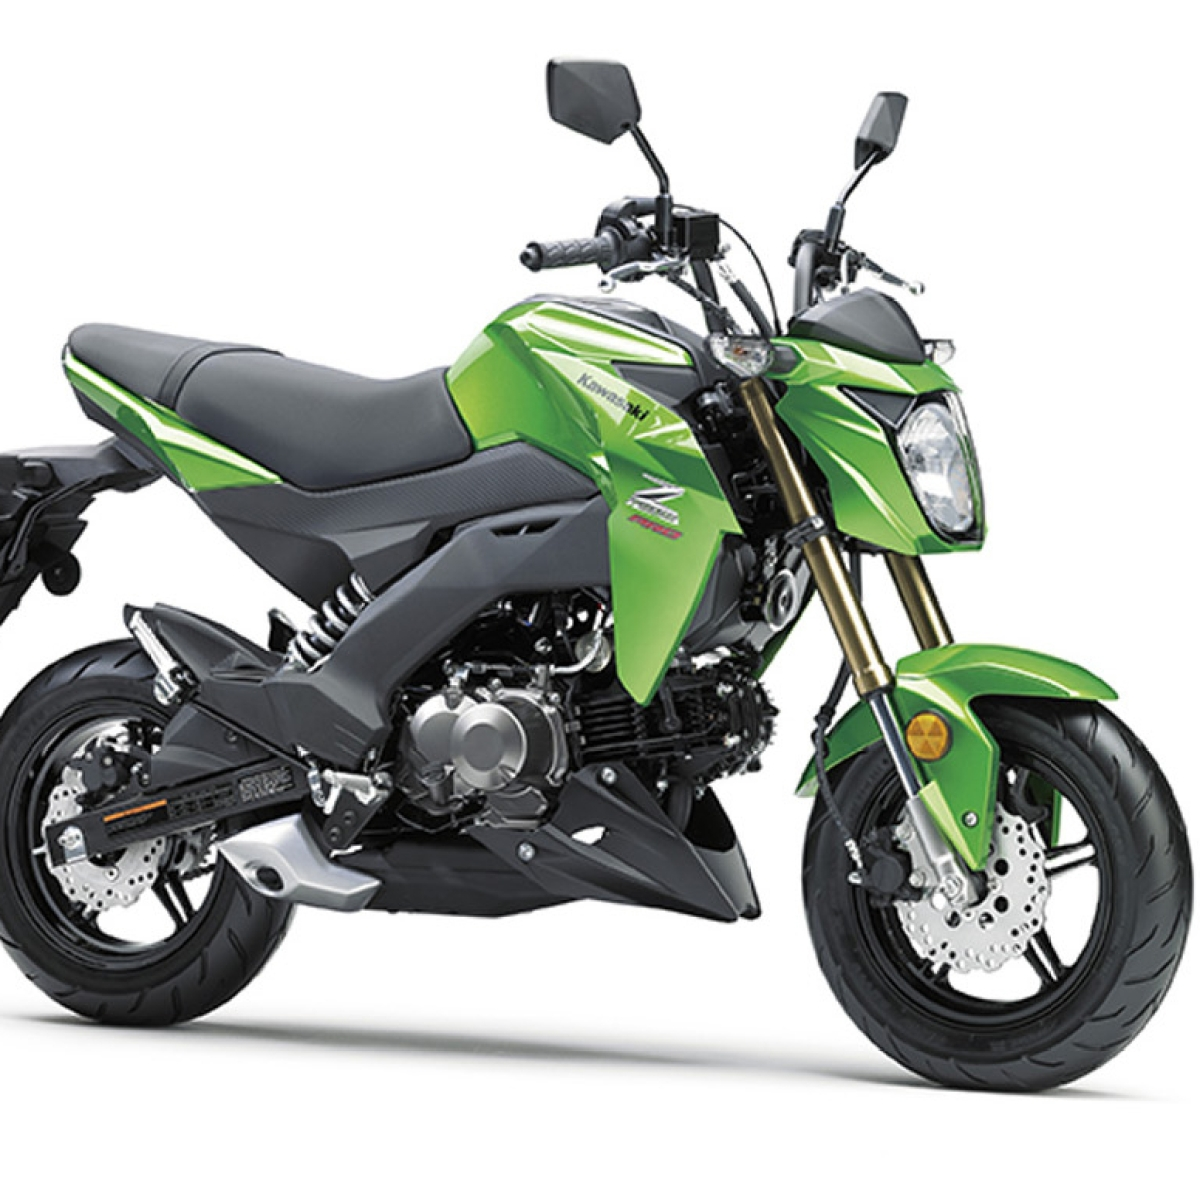 Test Ride: One Month With the Kawasaki Z125 Pro - Men's Journal